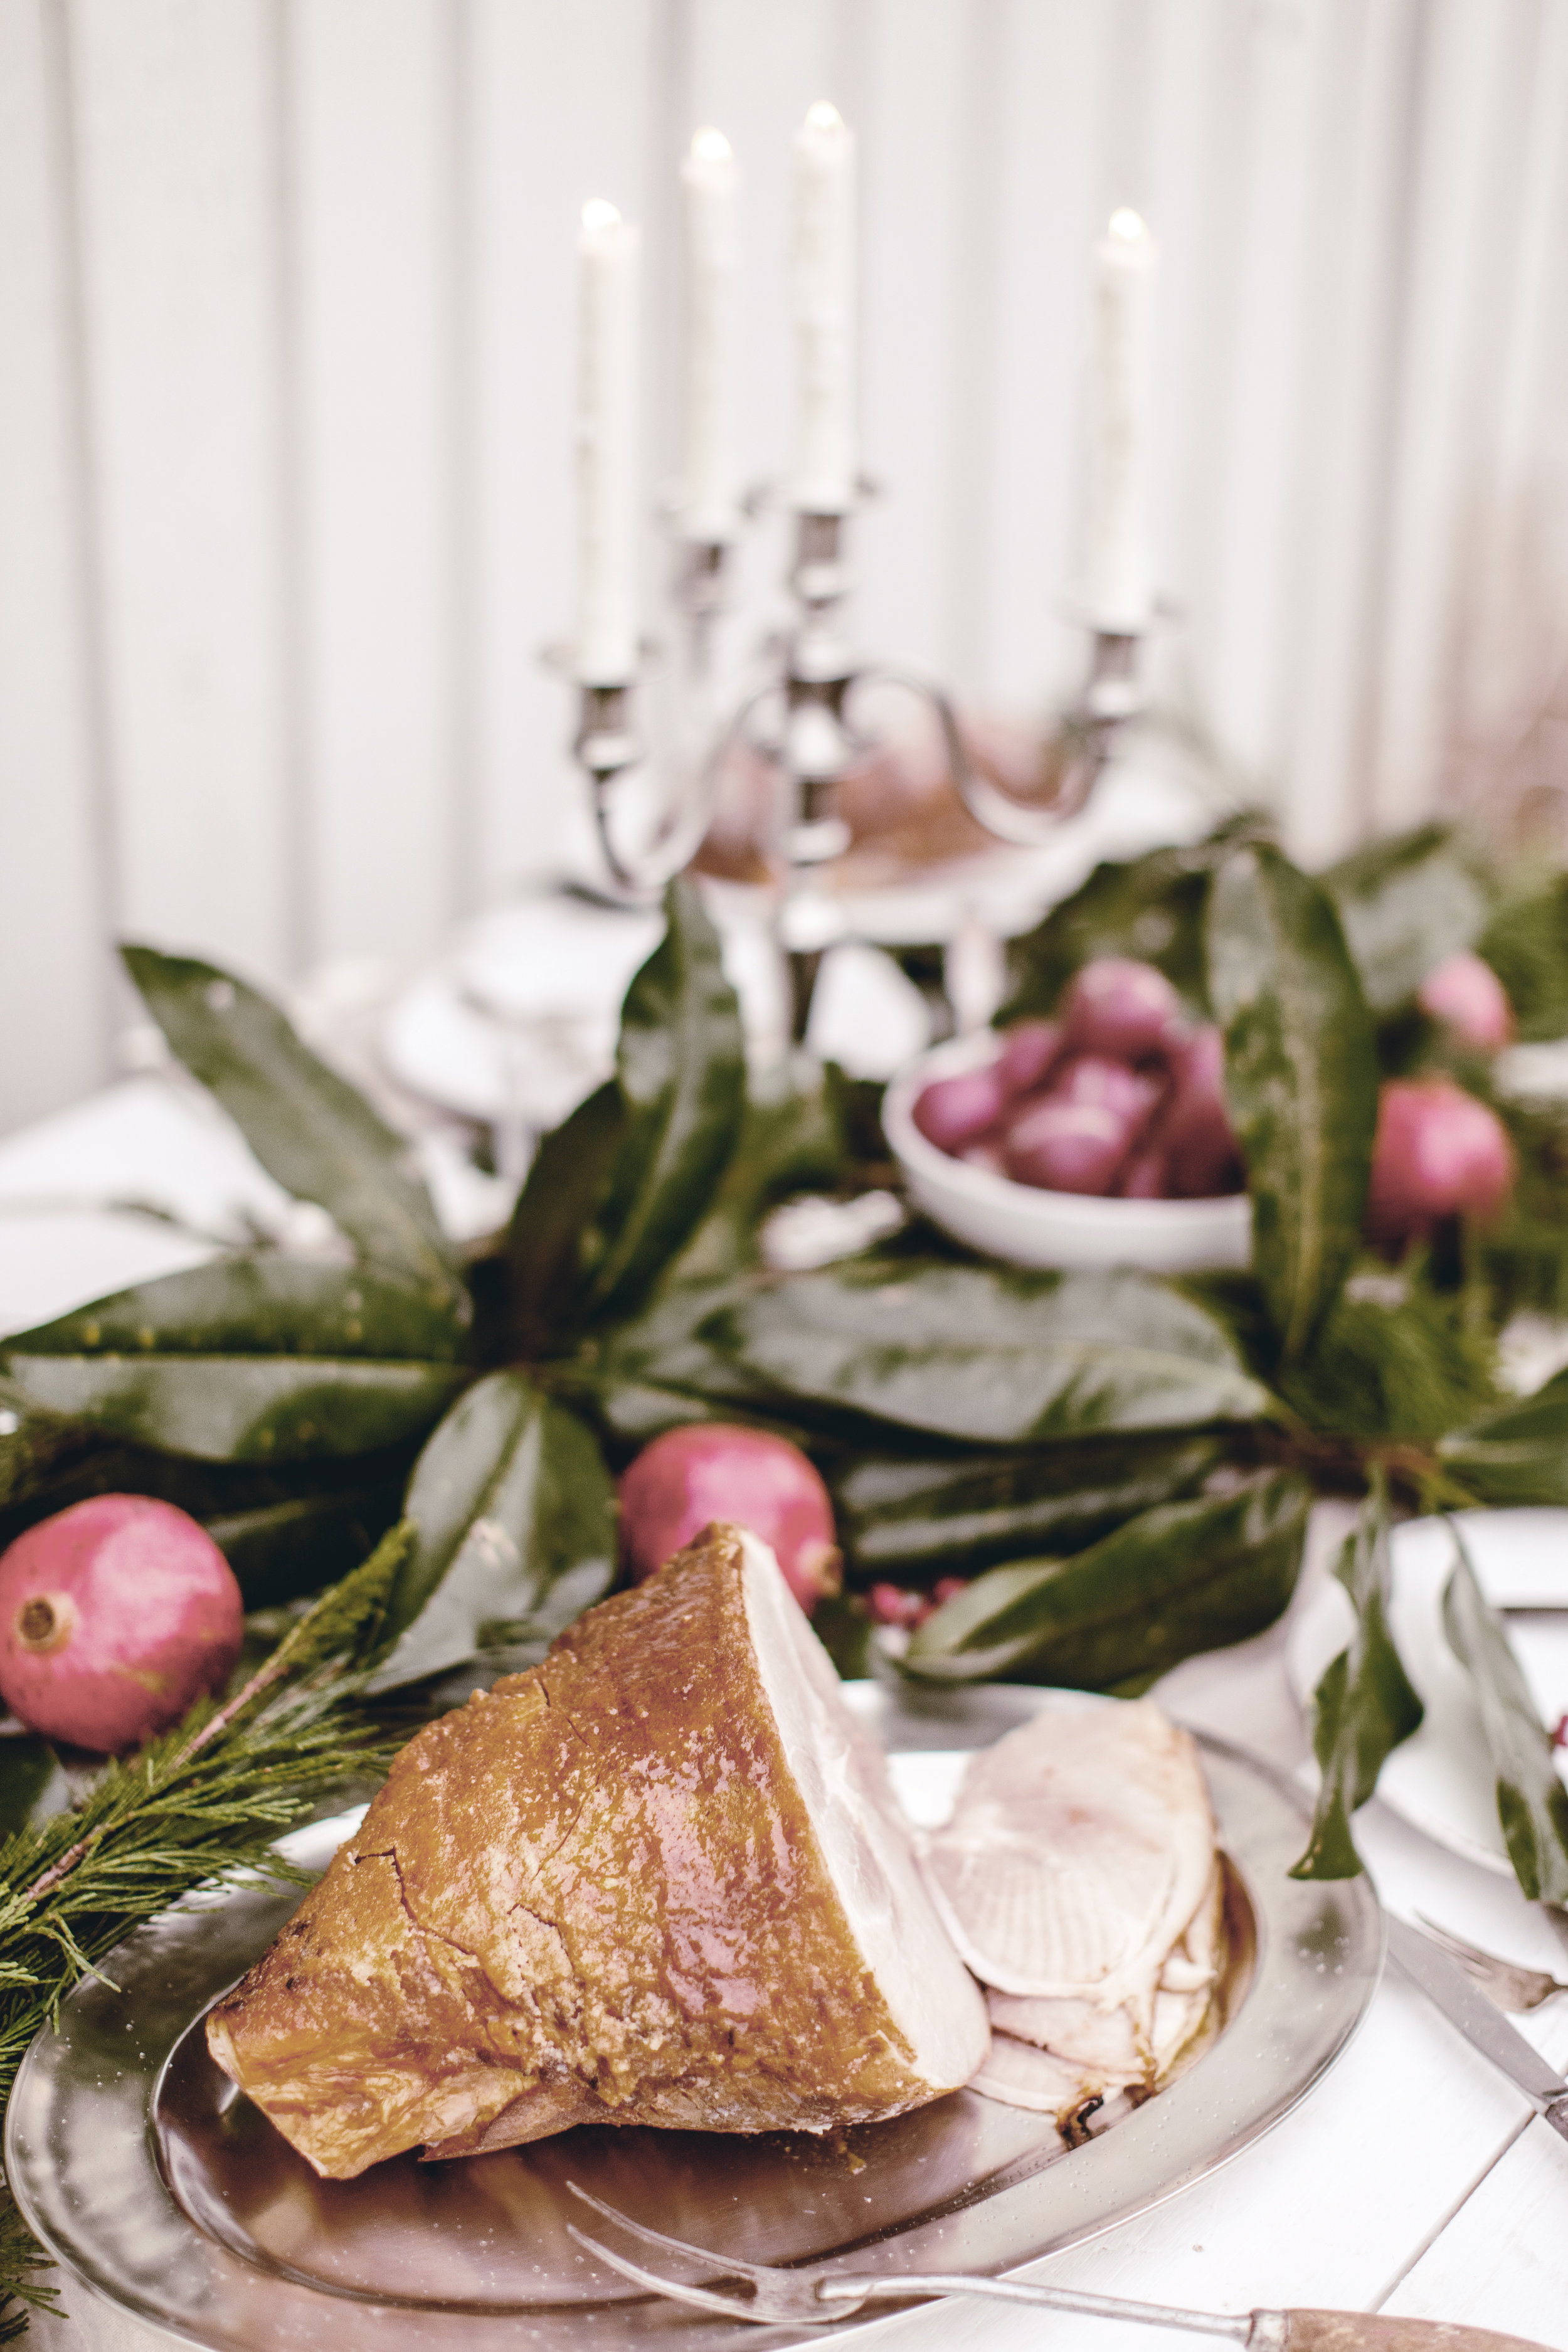 HoneyBaked Ham and Match Pewter platter for beautiful holiday tablescape / heirloomed